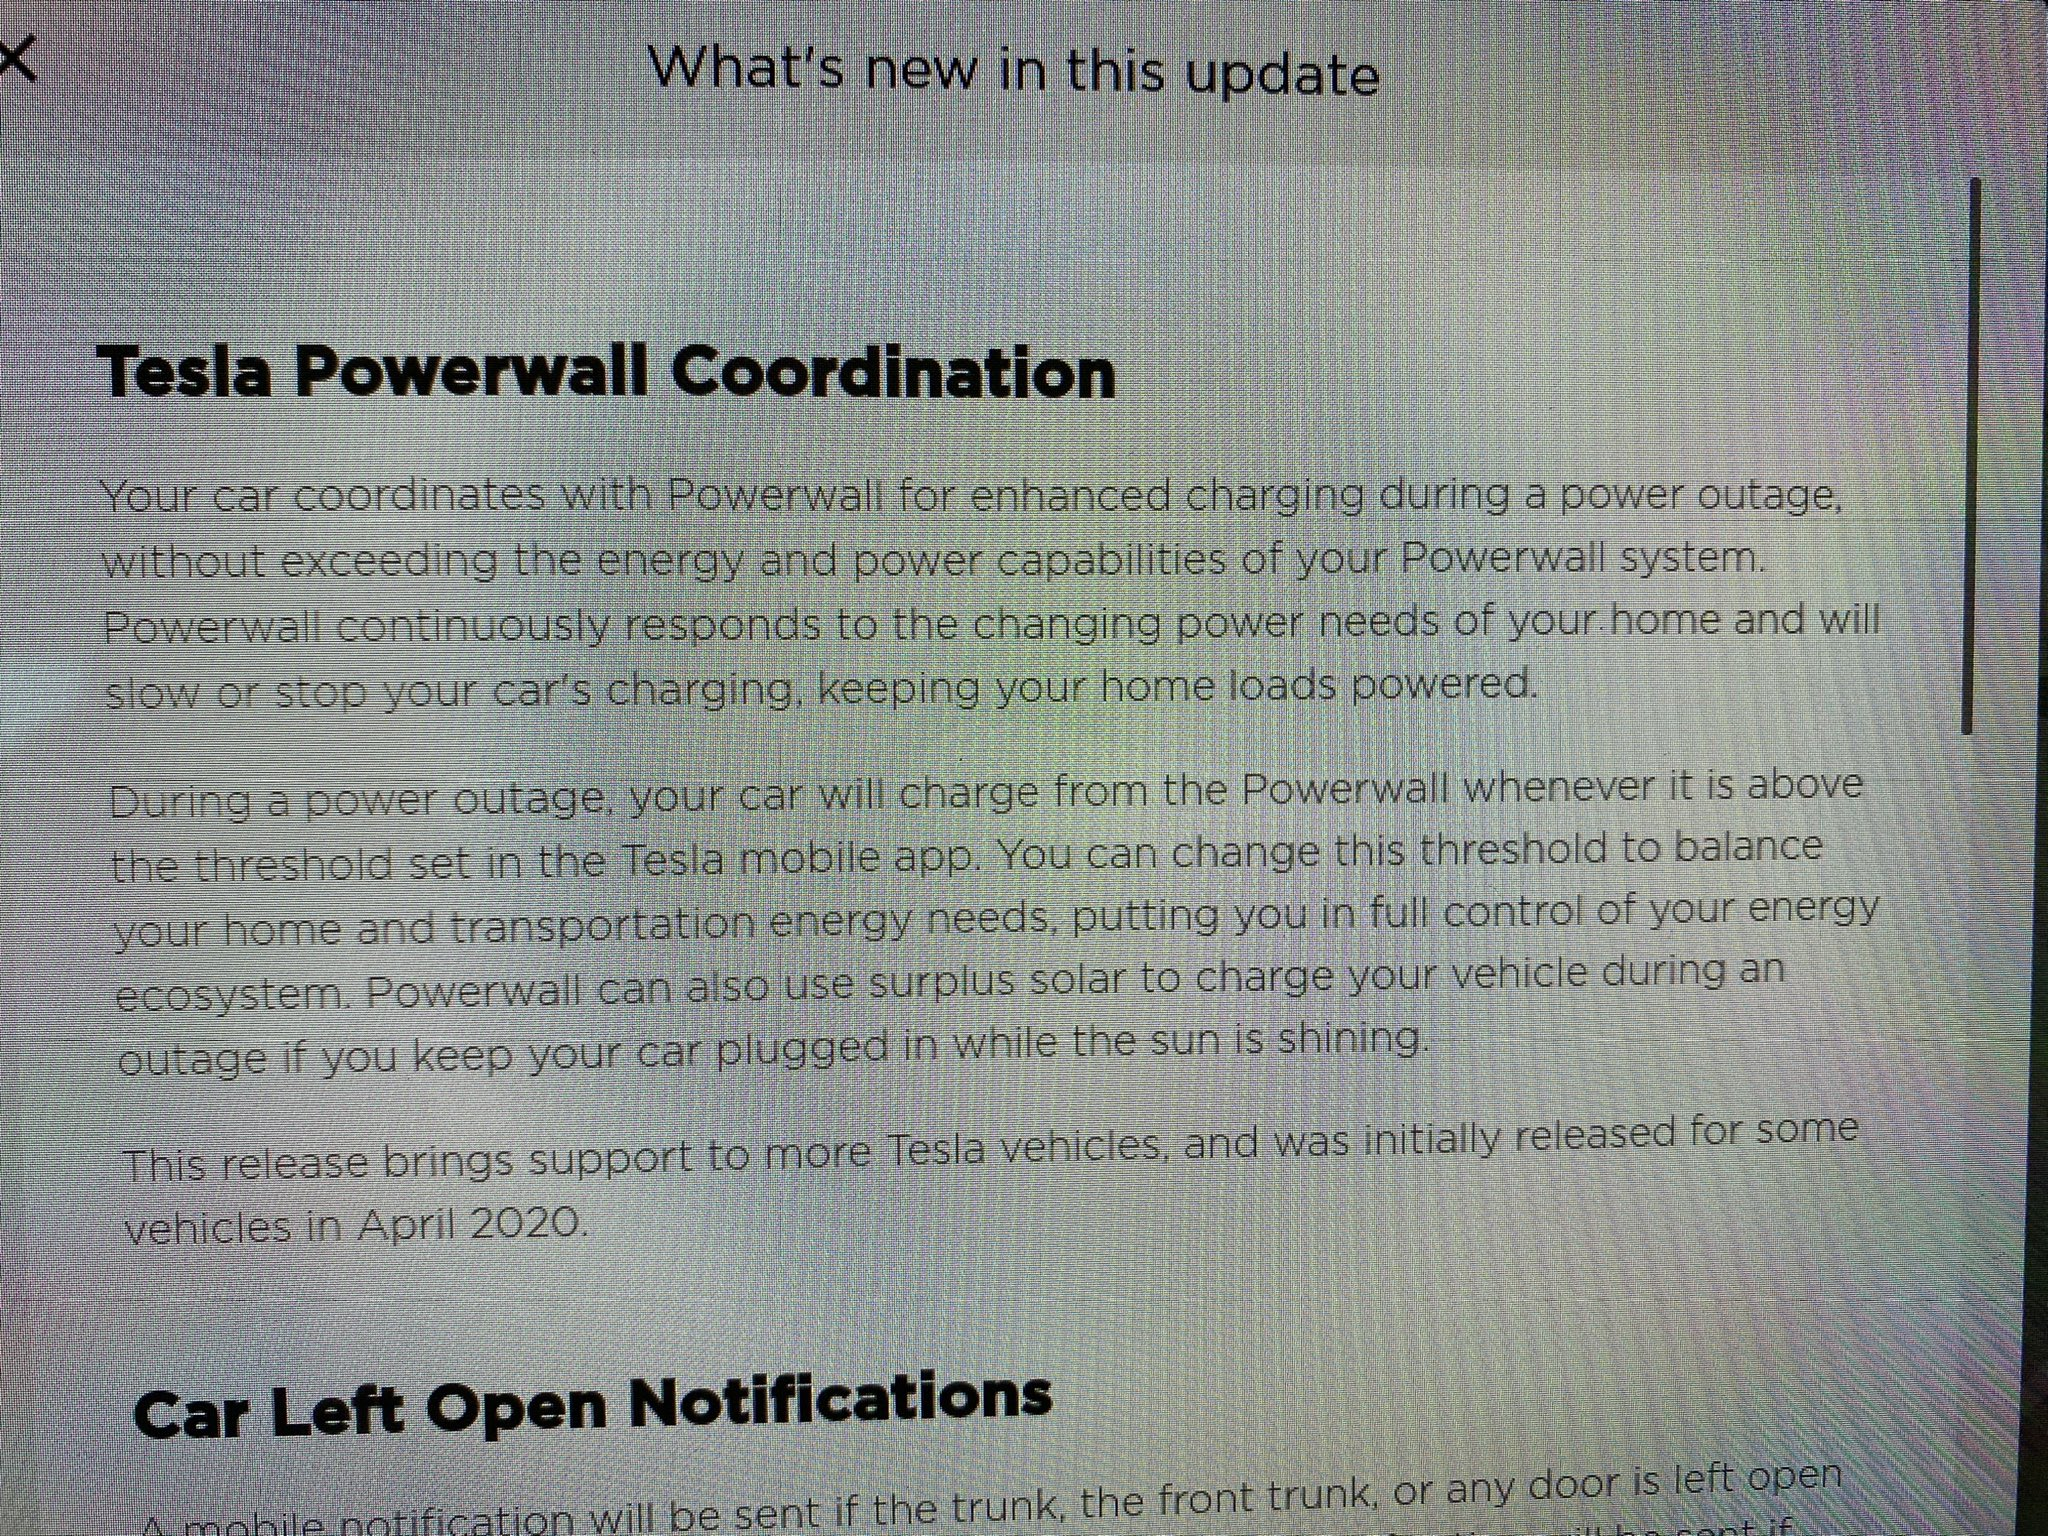 tesla-2020.32.3-update-powerwall-coordination